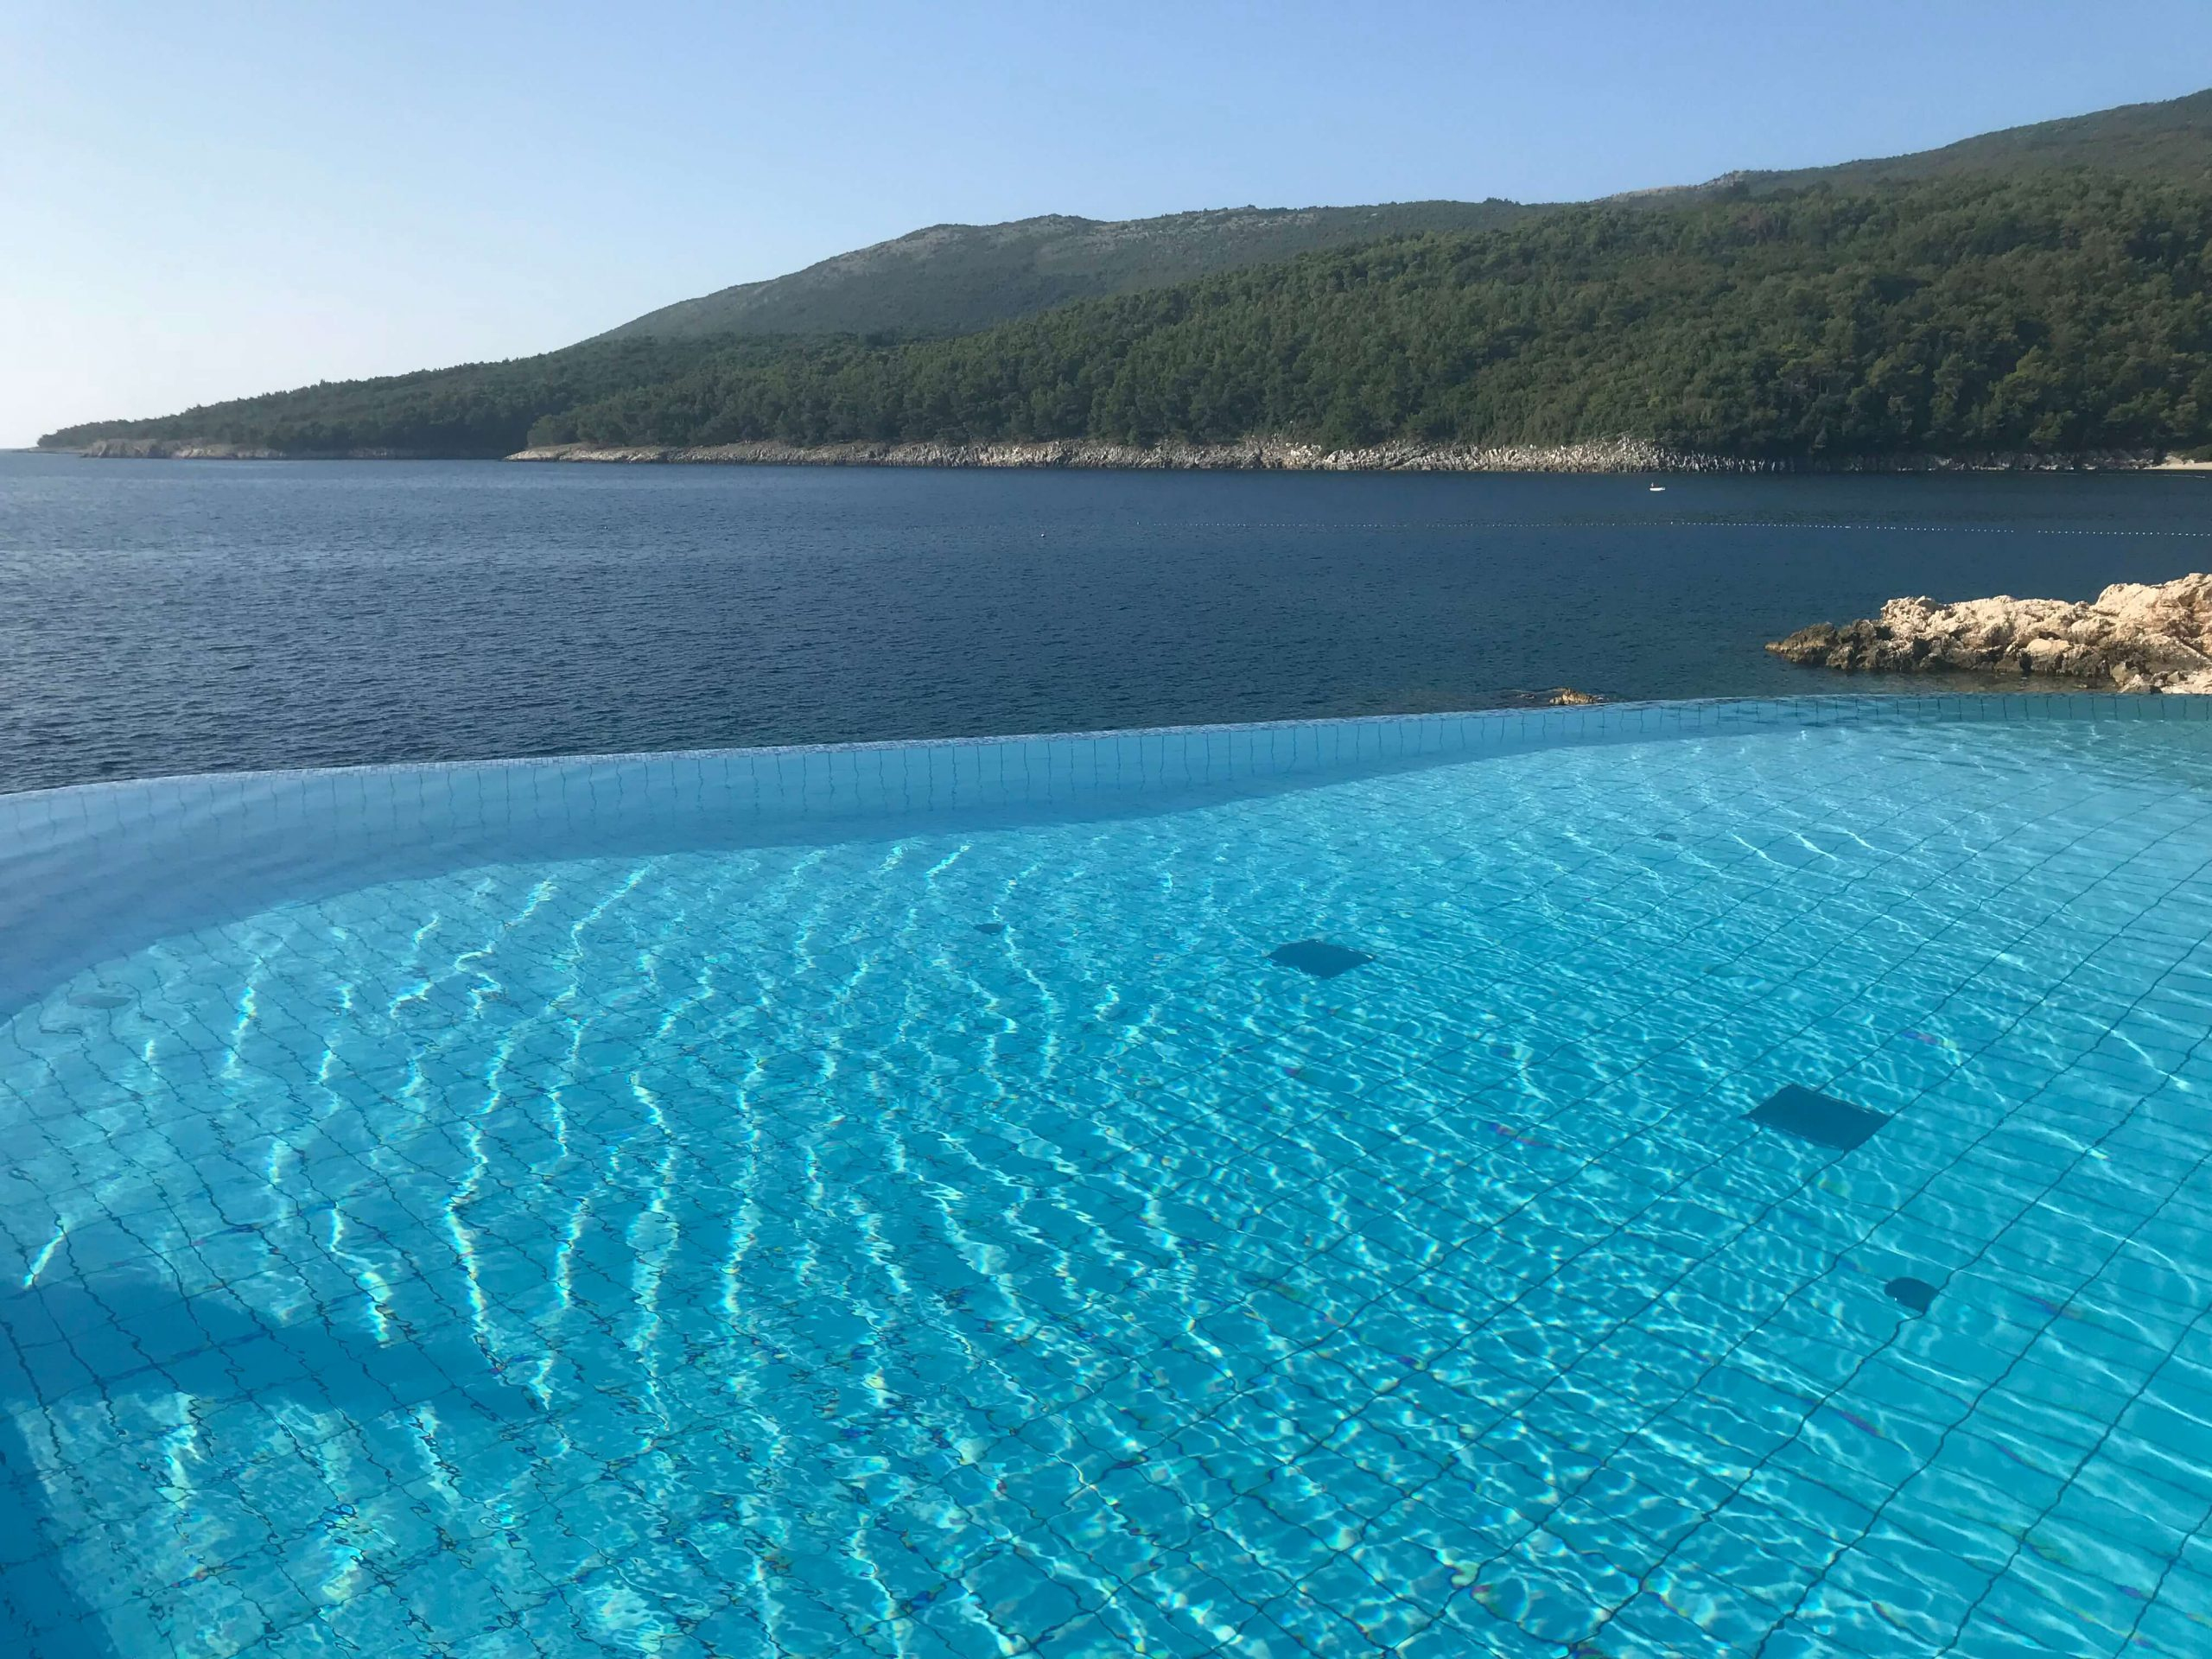 Infinity-Pool mit Meerblick | © Ivonne Wolter